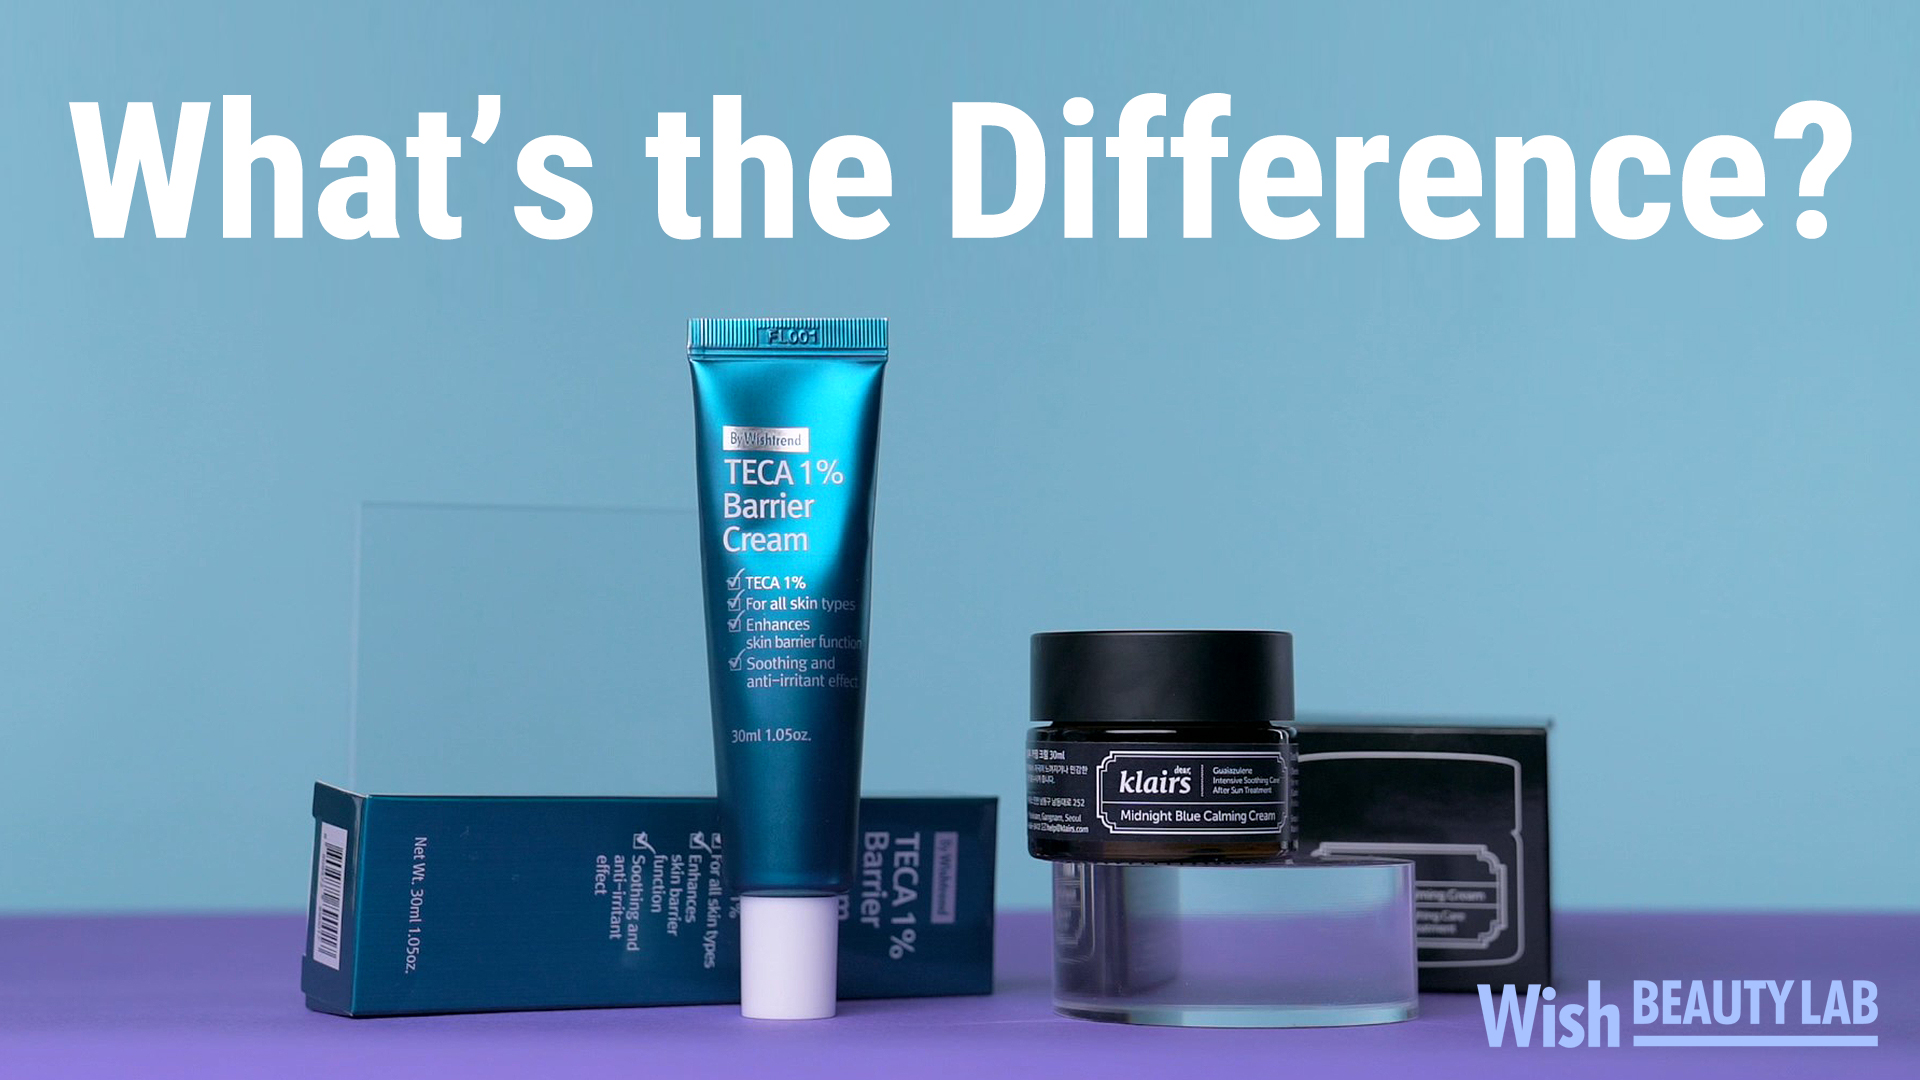 Difference between Teca 1% Barrier Cream and Midnight Blue Calming Cream